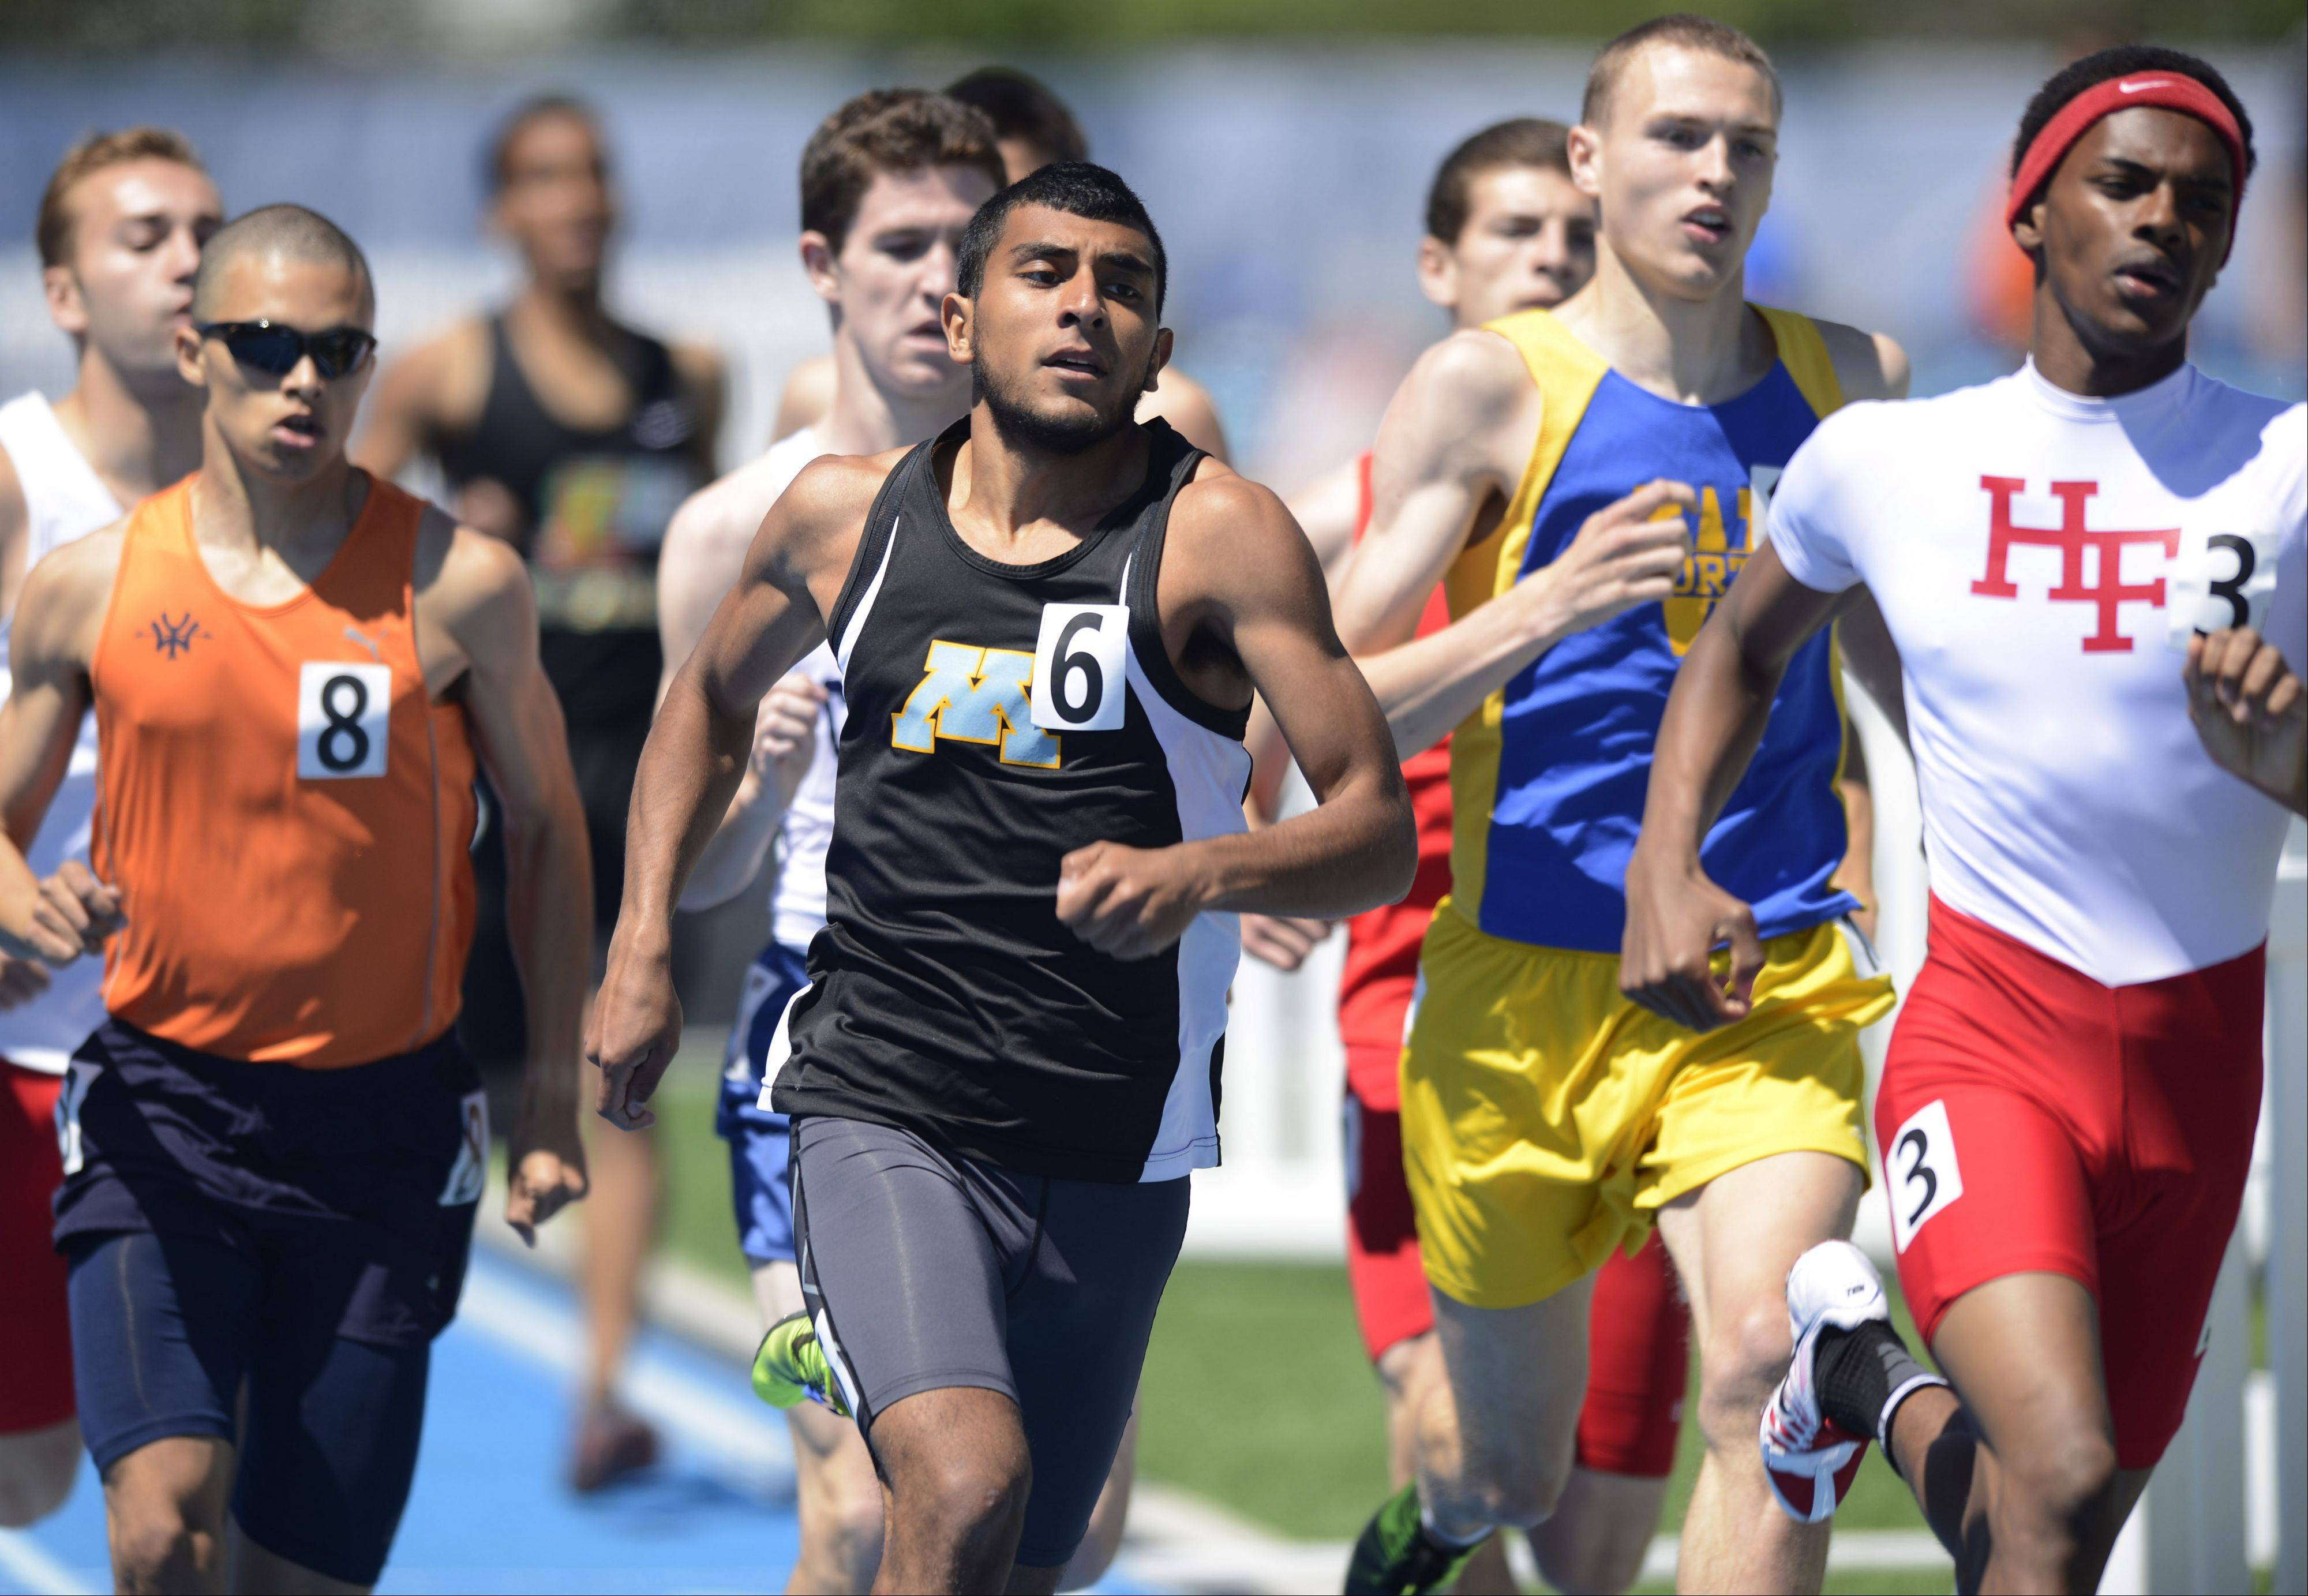 Maine West's Alex Gasca, middle, competes in the Class 3A 800-meter run during the boys state track preliminaries in Charleston Friday.